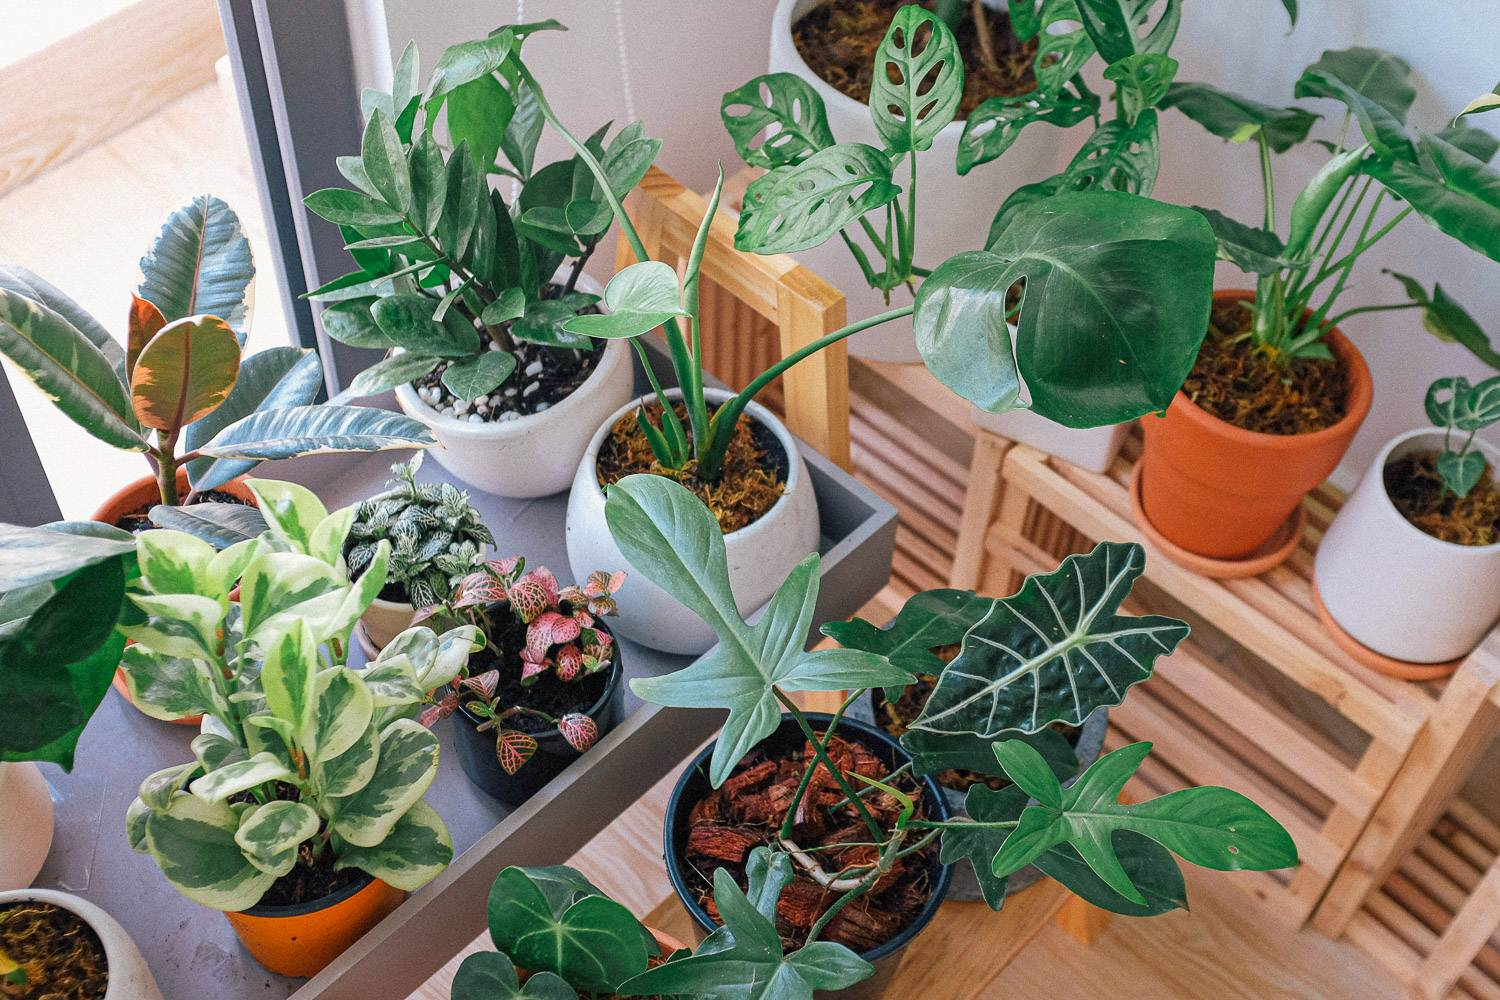 Image of various small potted green plants indoors